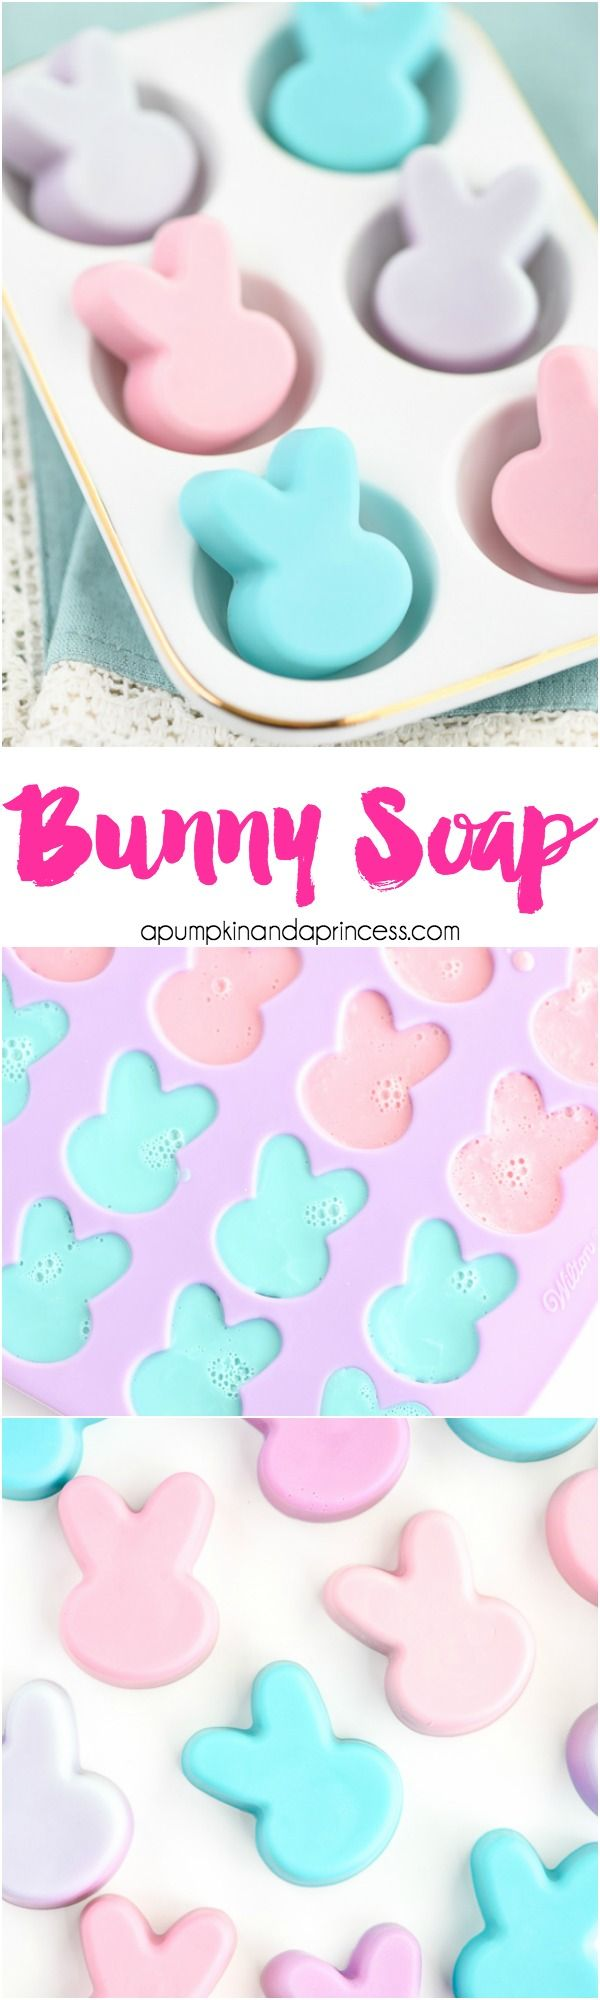 DIY Bunny Soap - These handmade bunny shaped soaps made with orange essential oil make a great candy alternative for Easter baskets. MichaelsMakers A Pumpkin And A Princess